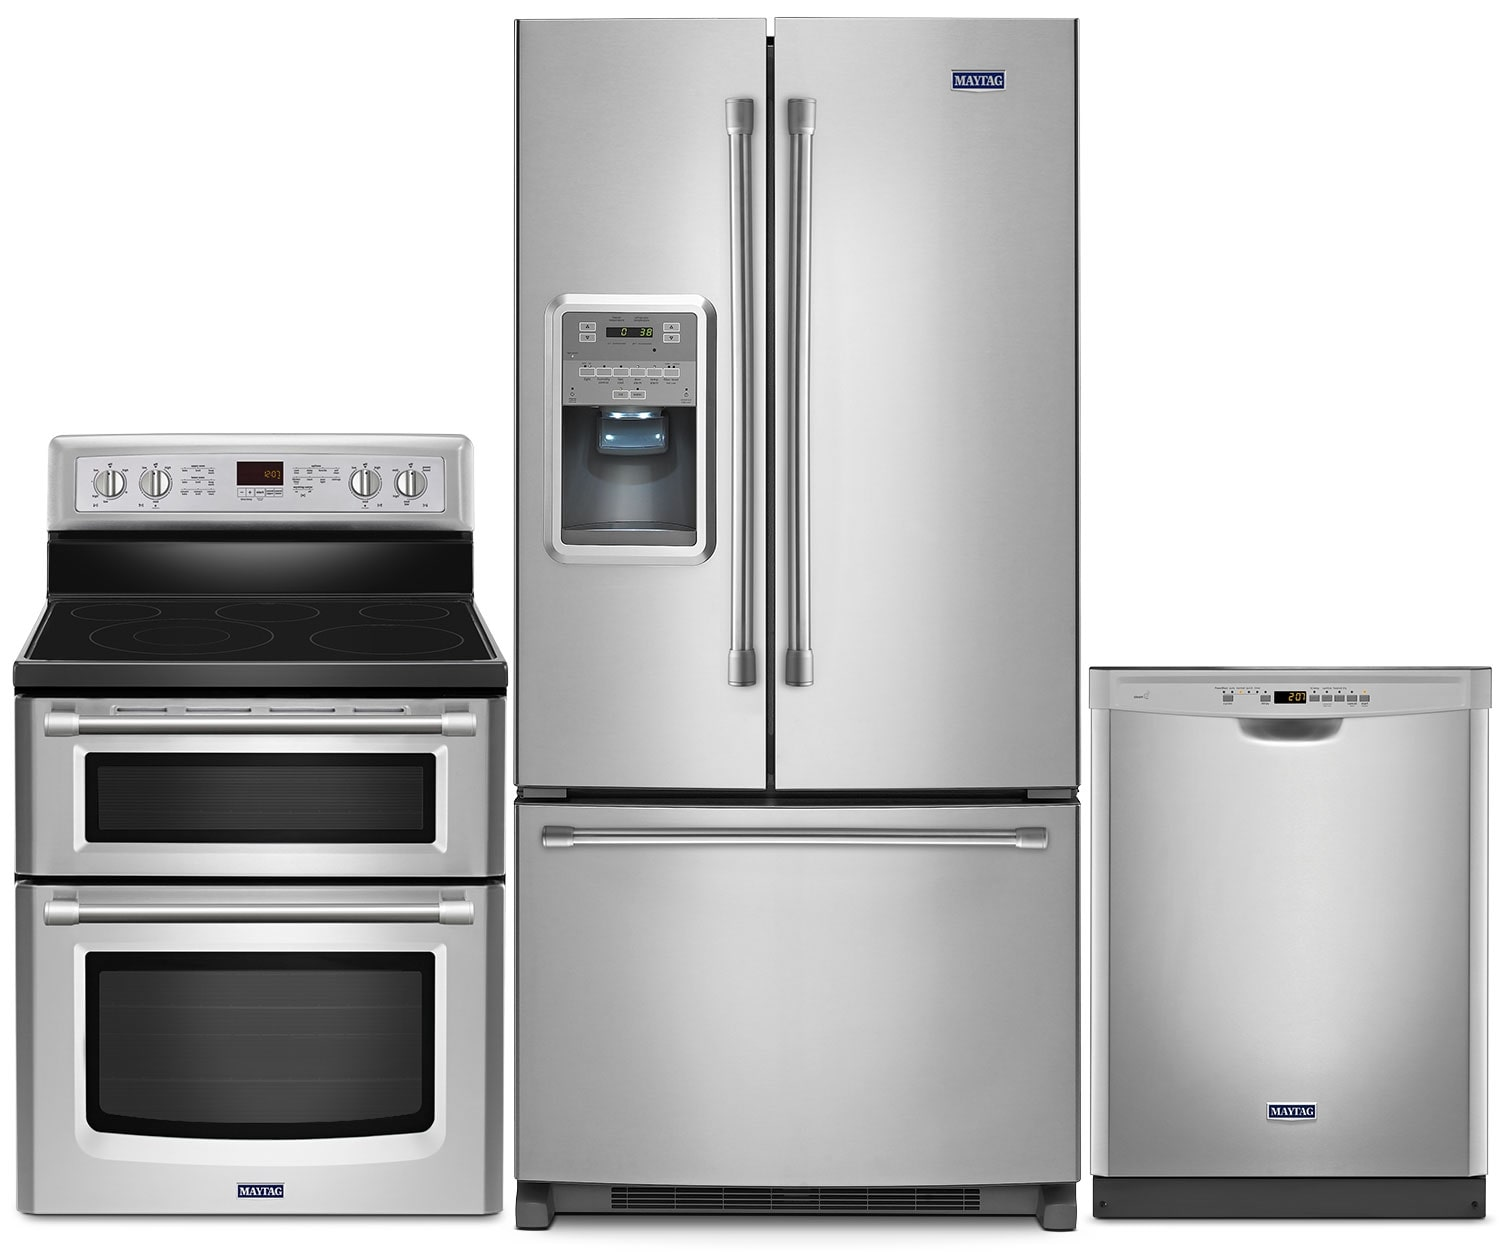 Cooking Products - Maytag® 22 Cu. Ft. French-Door Refrigerator, 6.7 Cu. Ft. Range and Built-In Dishwasher – Stainless S